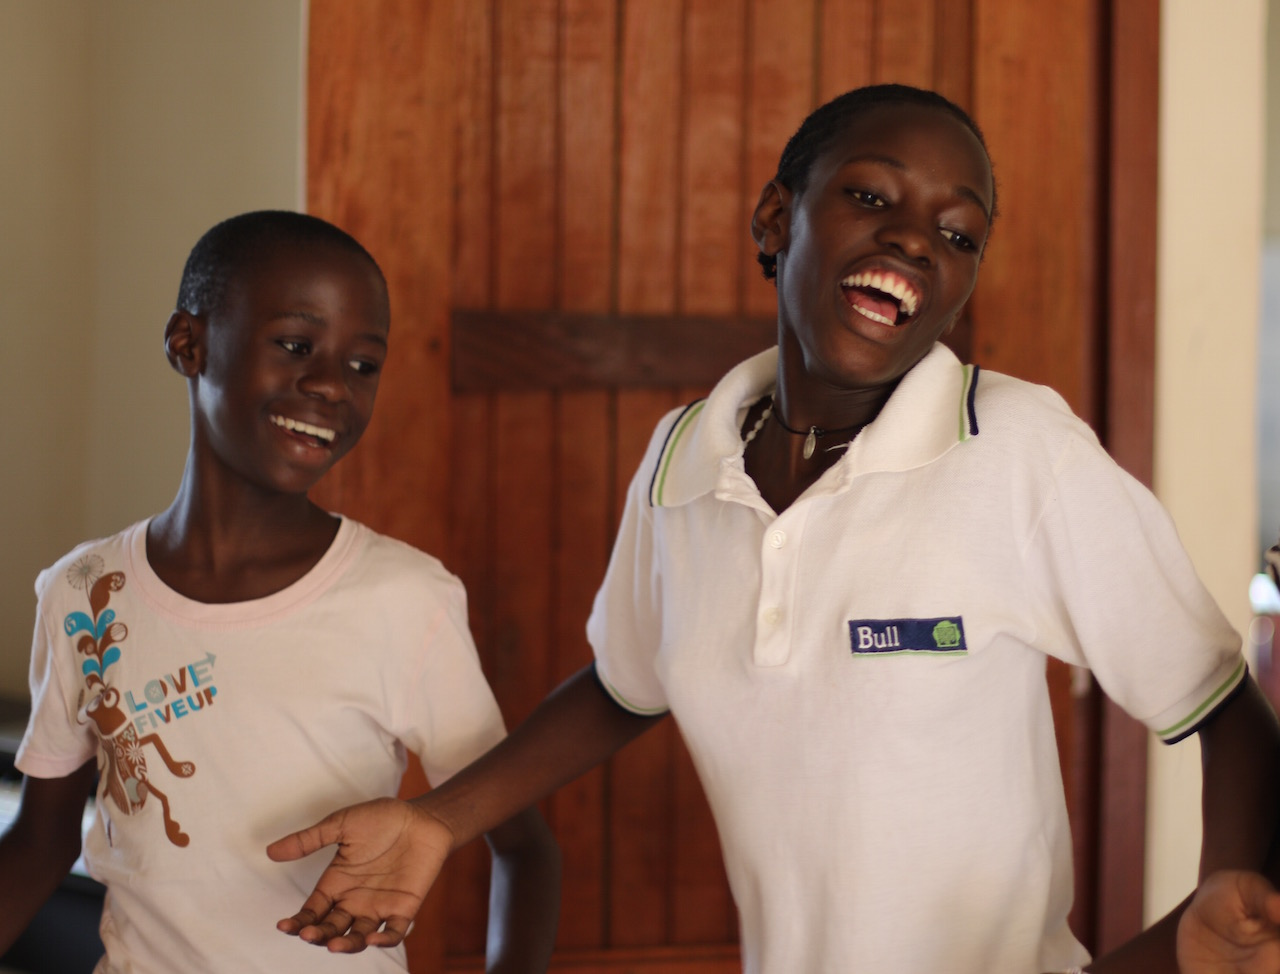 """""""Music is powerful. It gives children an opportunity to tell their stories and become aware of their potential and self worth,"""" said Branco. (Left to right: Shamsha and Cissy)"""